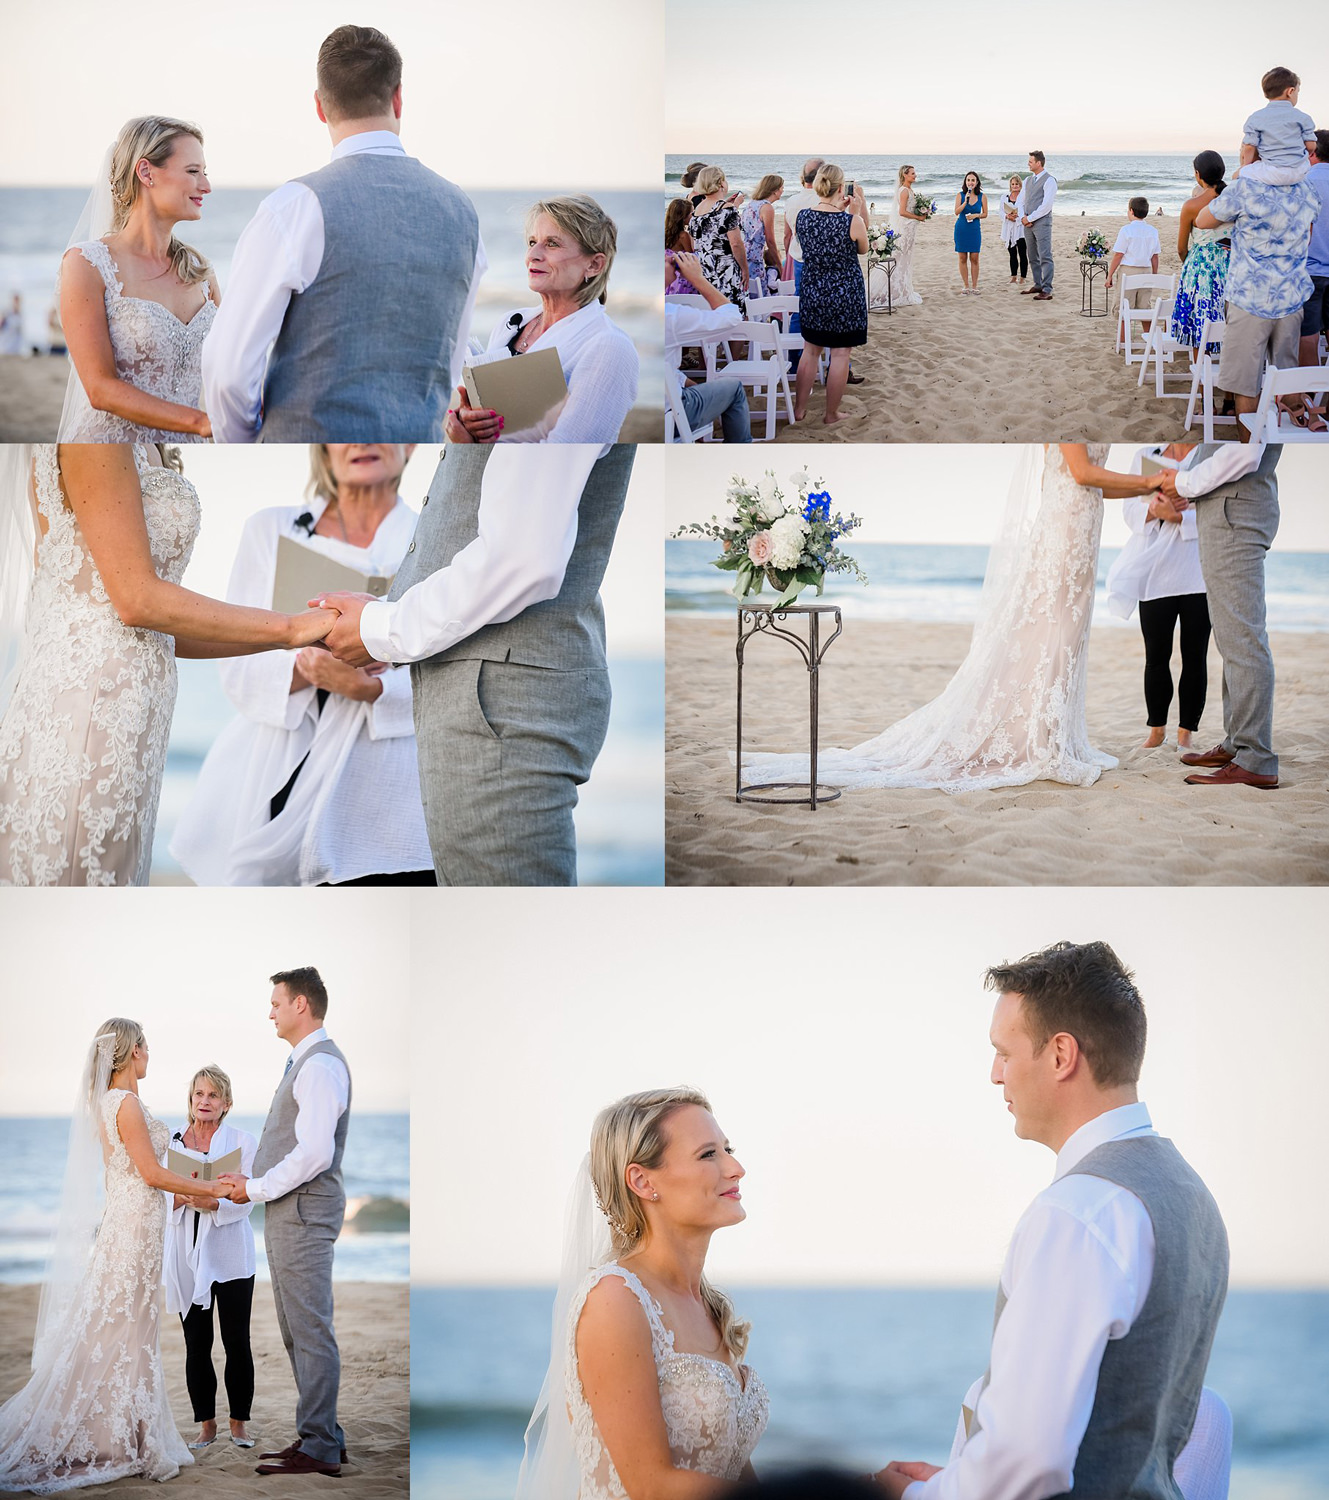 beautiful-beach-wedding-photos-sunset-sandbridge-beach-cottage-melissa-bliss-photography.jpg